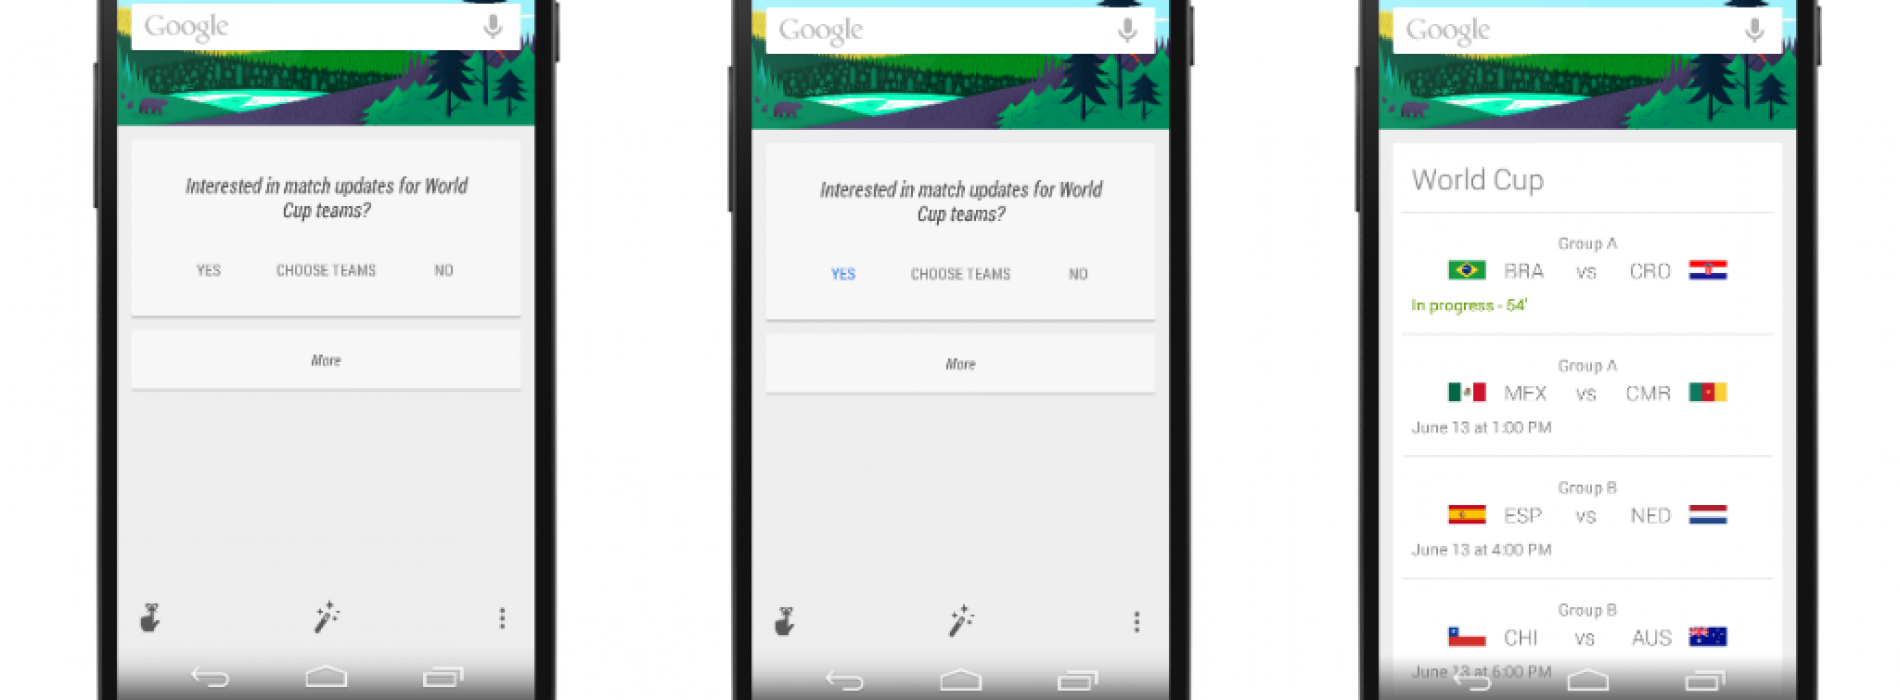 Google tweet has Android fanboys thinking 5.0 for Google I/O